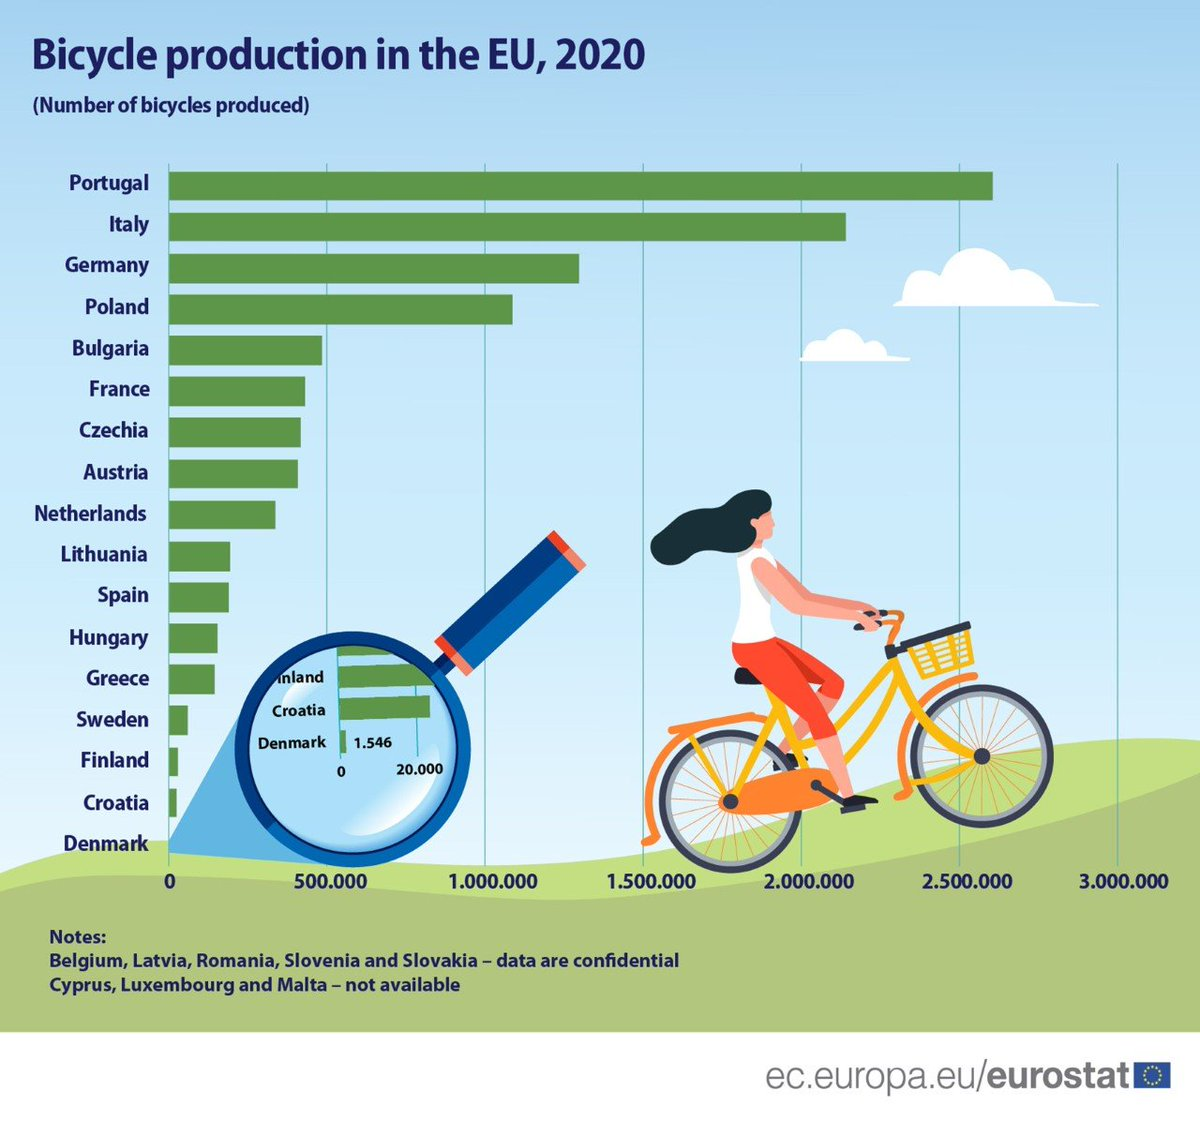 #DYK that 🇵🇱 is among the top producers of bicycles in the #EU? With 1.09 million 🚲 manufactured in 2020, #Poland ranks fourth after 🇵🇹, 🇮🇹 and 🇩🇪.  Poles also ♥️ cycling: for almost half of them, both kids and adults, it is a favourite #sports activity! 🚴♀️🚴🚴♂️  #MadeInPoland🇵🇱 https://t.co/fjN8F8Eg4u